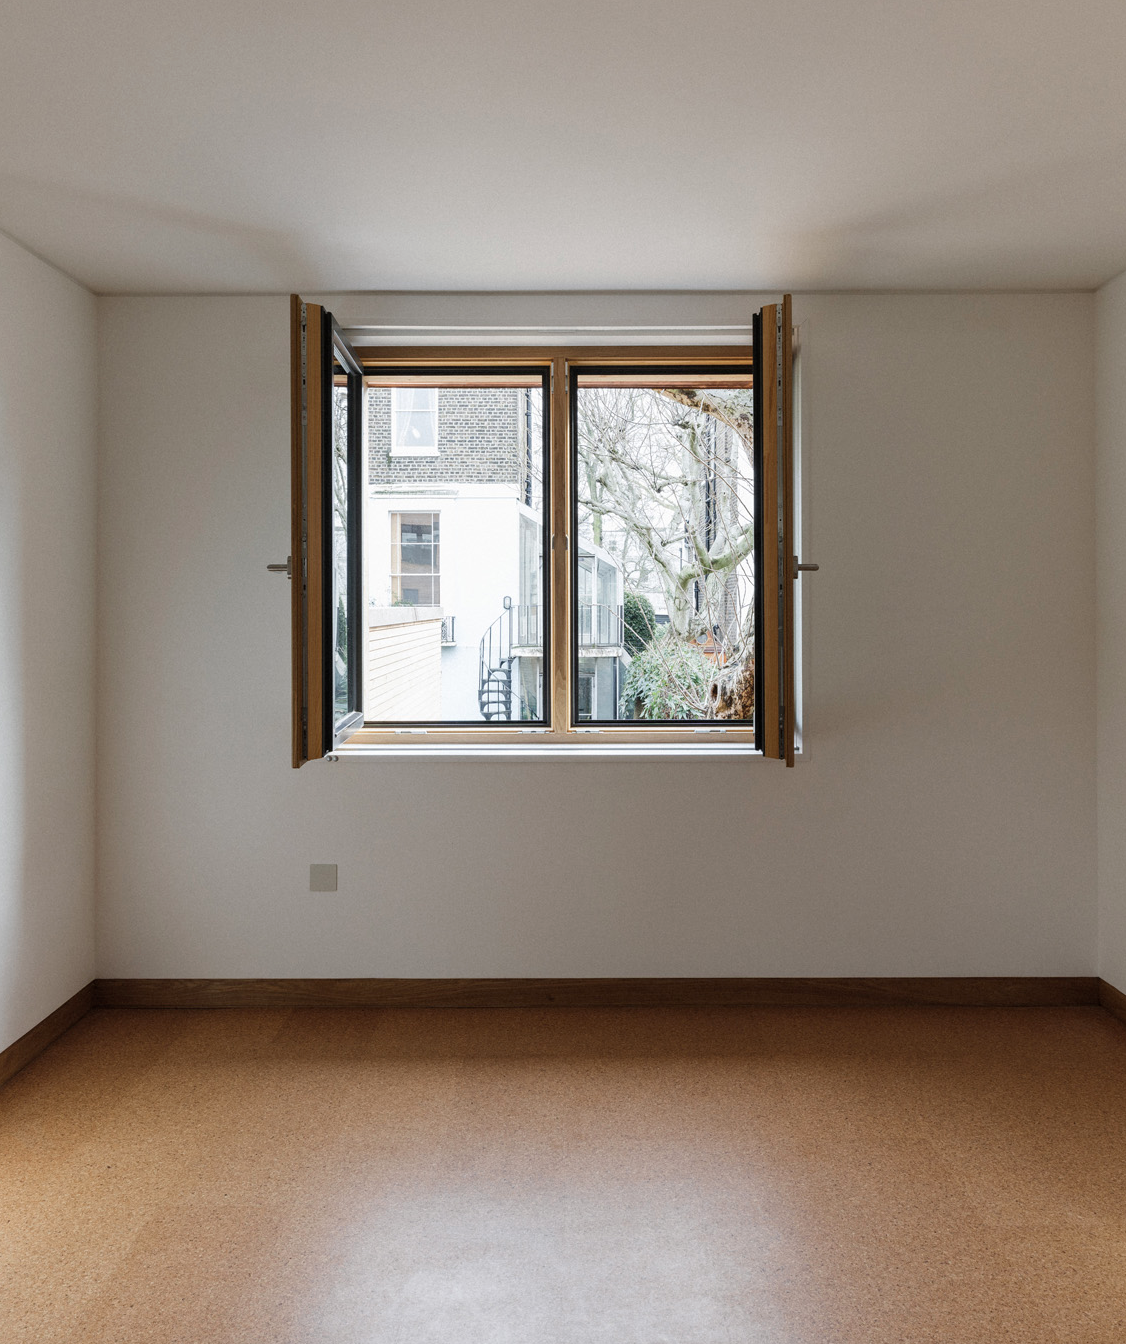 Inside Max Fordham House: there is a misconception that Passivhaus windows don't open